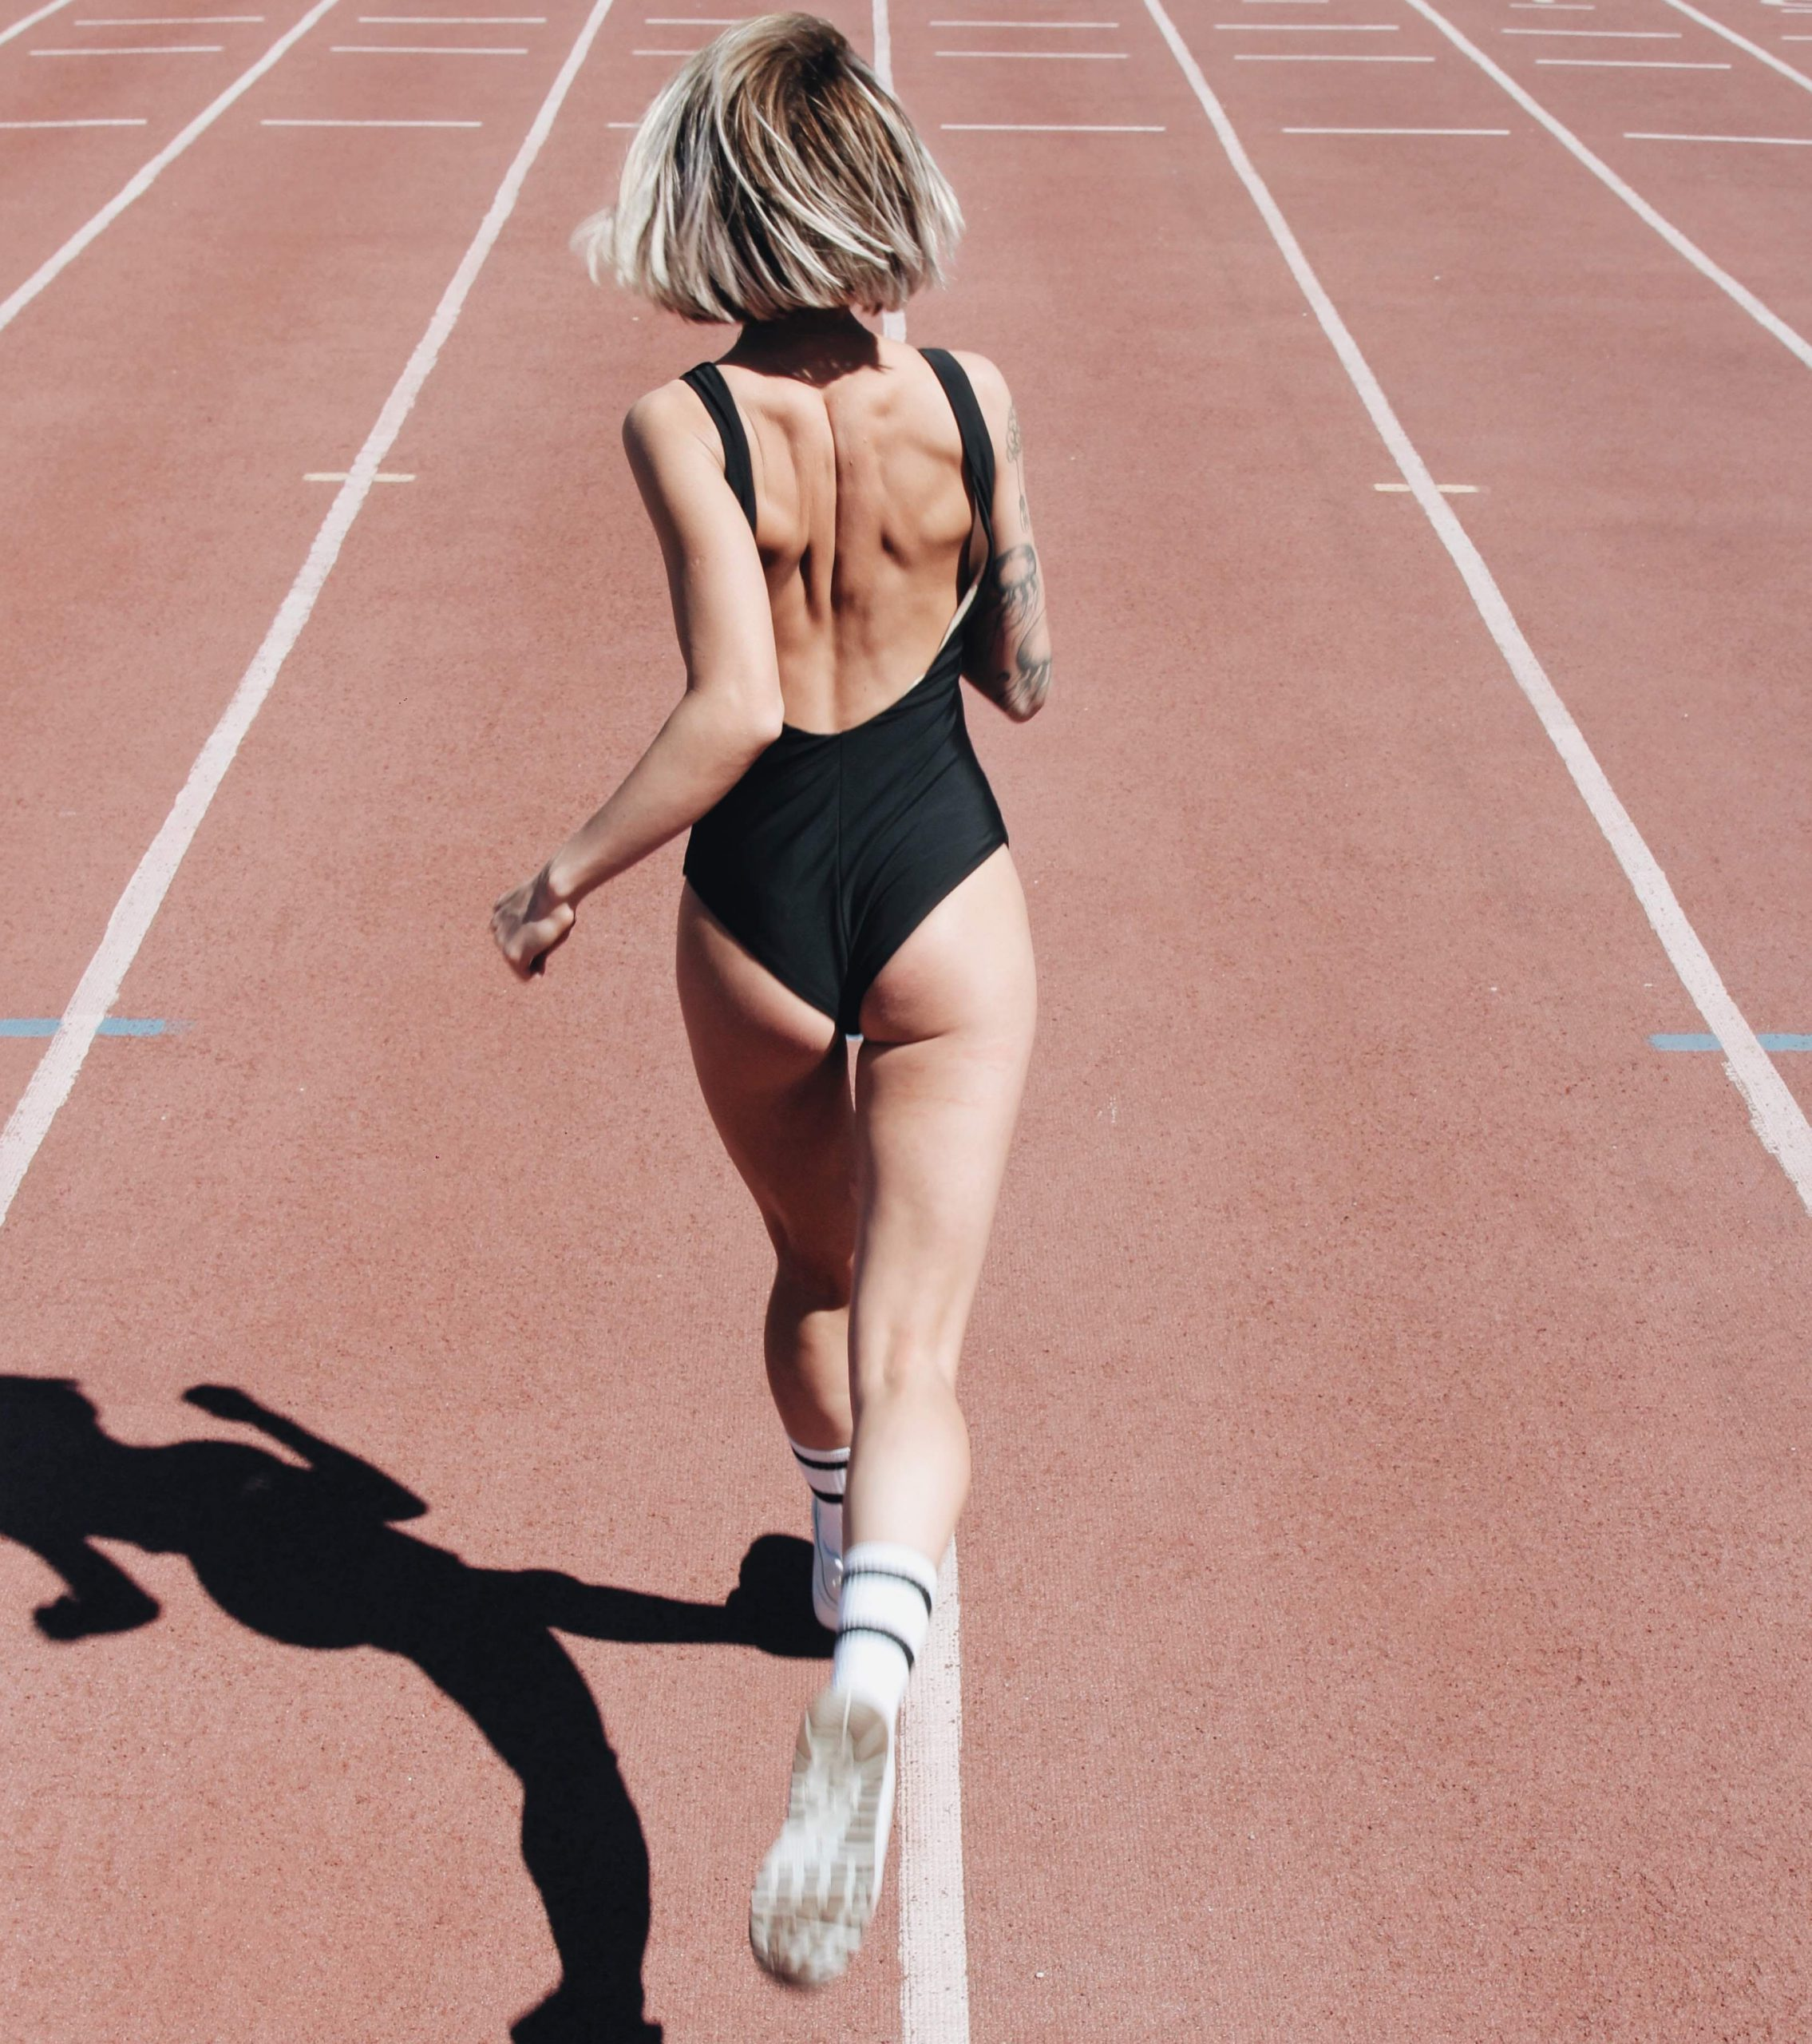 woman running in black body suit on a track